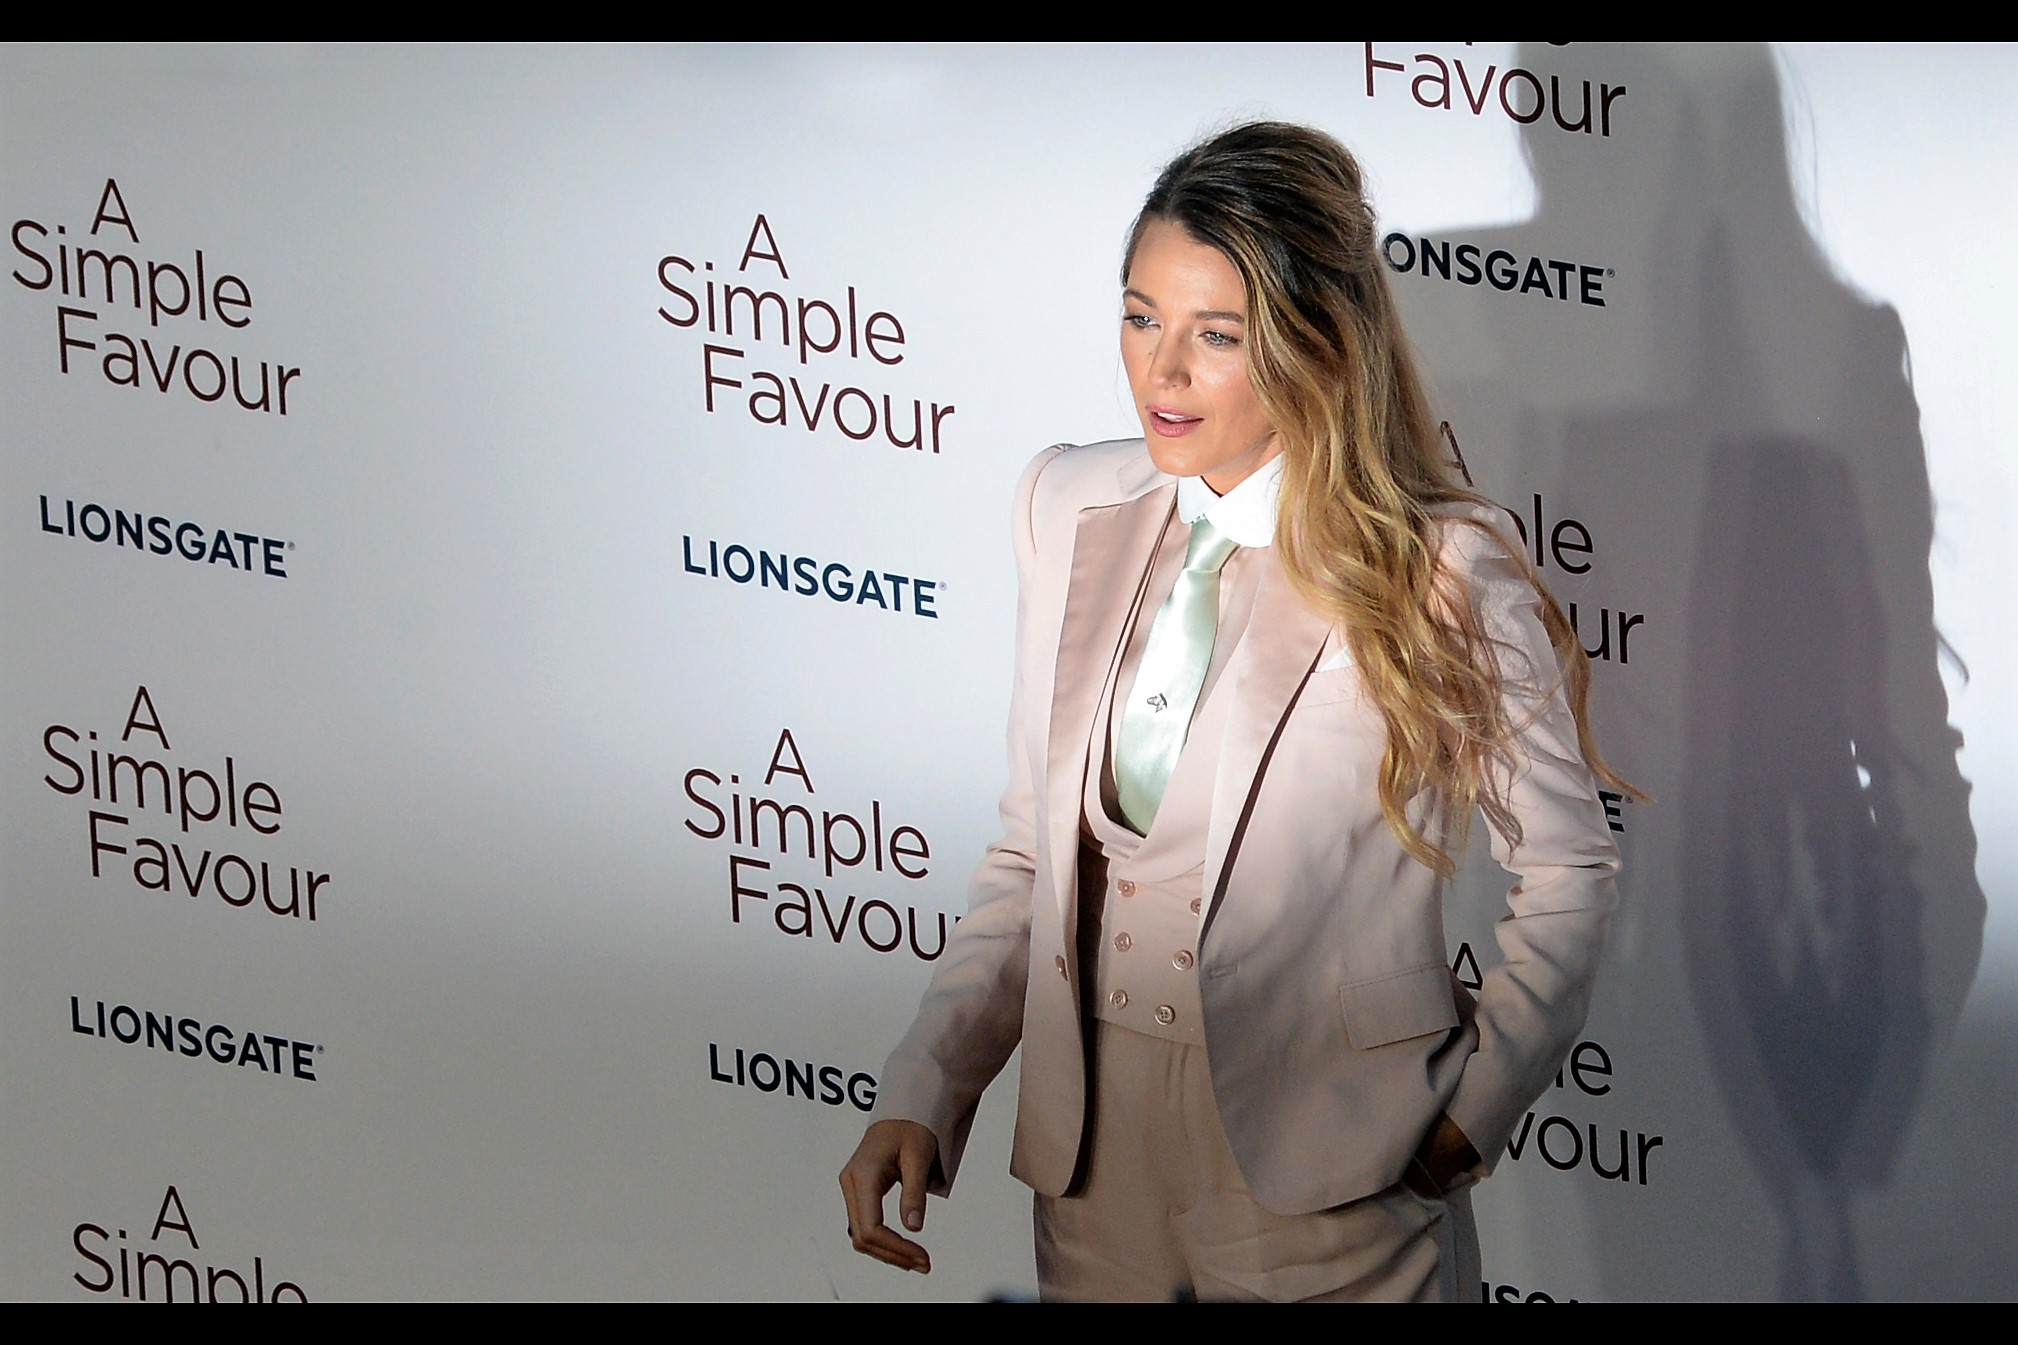 Not only is actress Blake Lively wearing a silk waistcoat and jacket, and not only is she wearing a tie… but that TIE is wearing a TIE-PIN!!